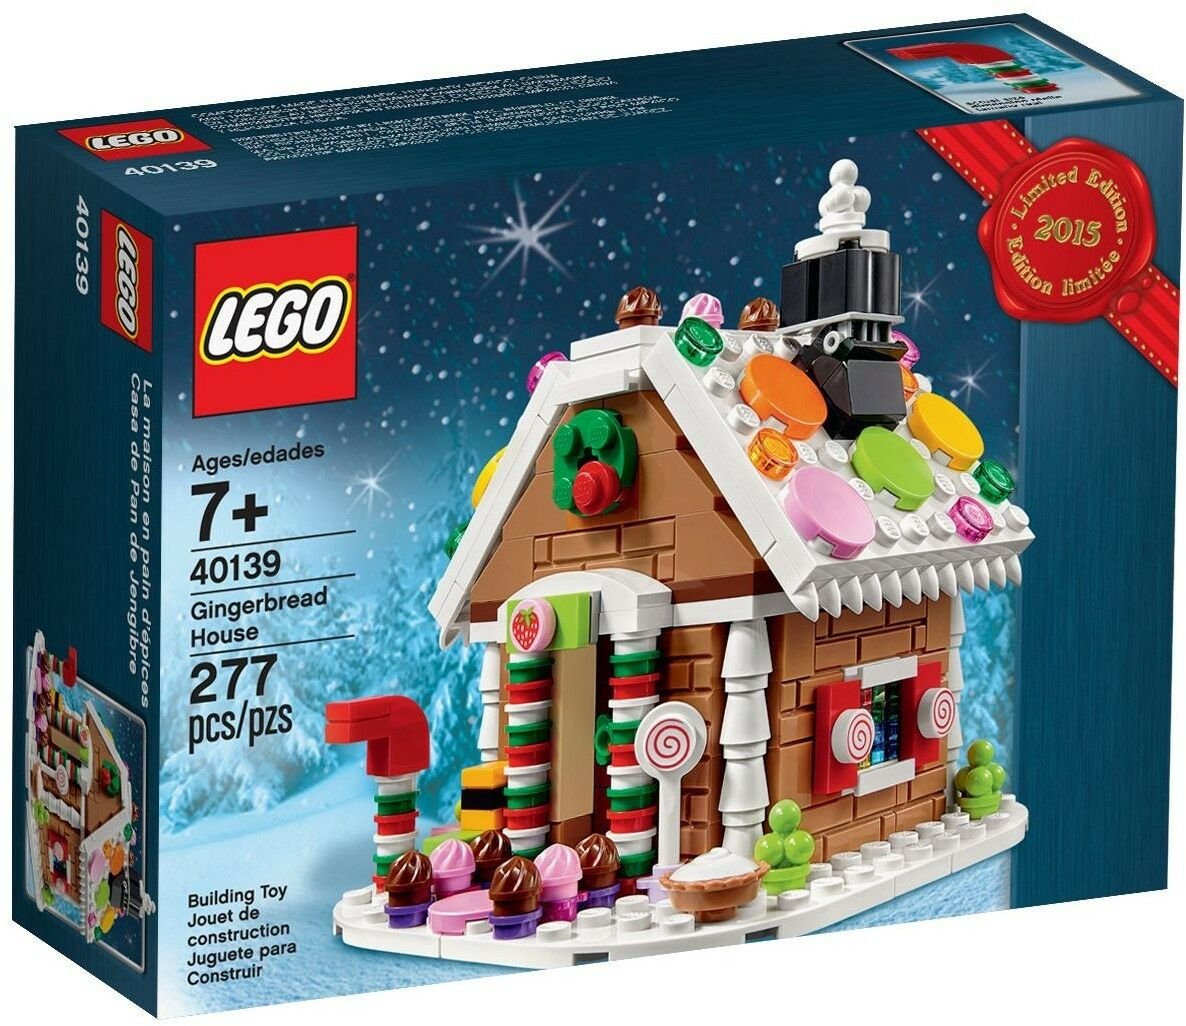 NEW Retired LEGO 40139 Creator Christmas Gingerbread House Building Play Set